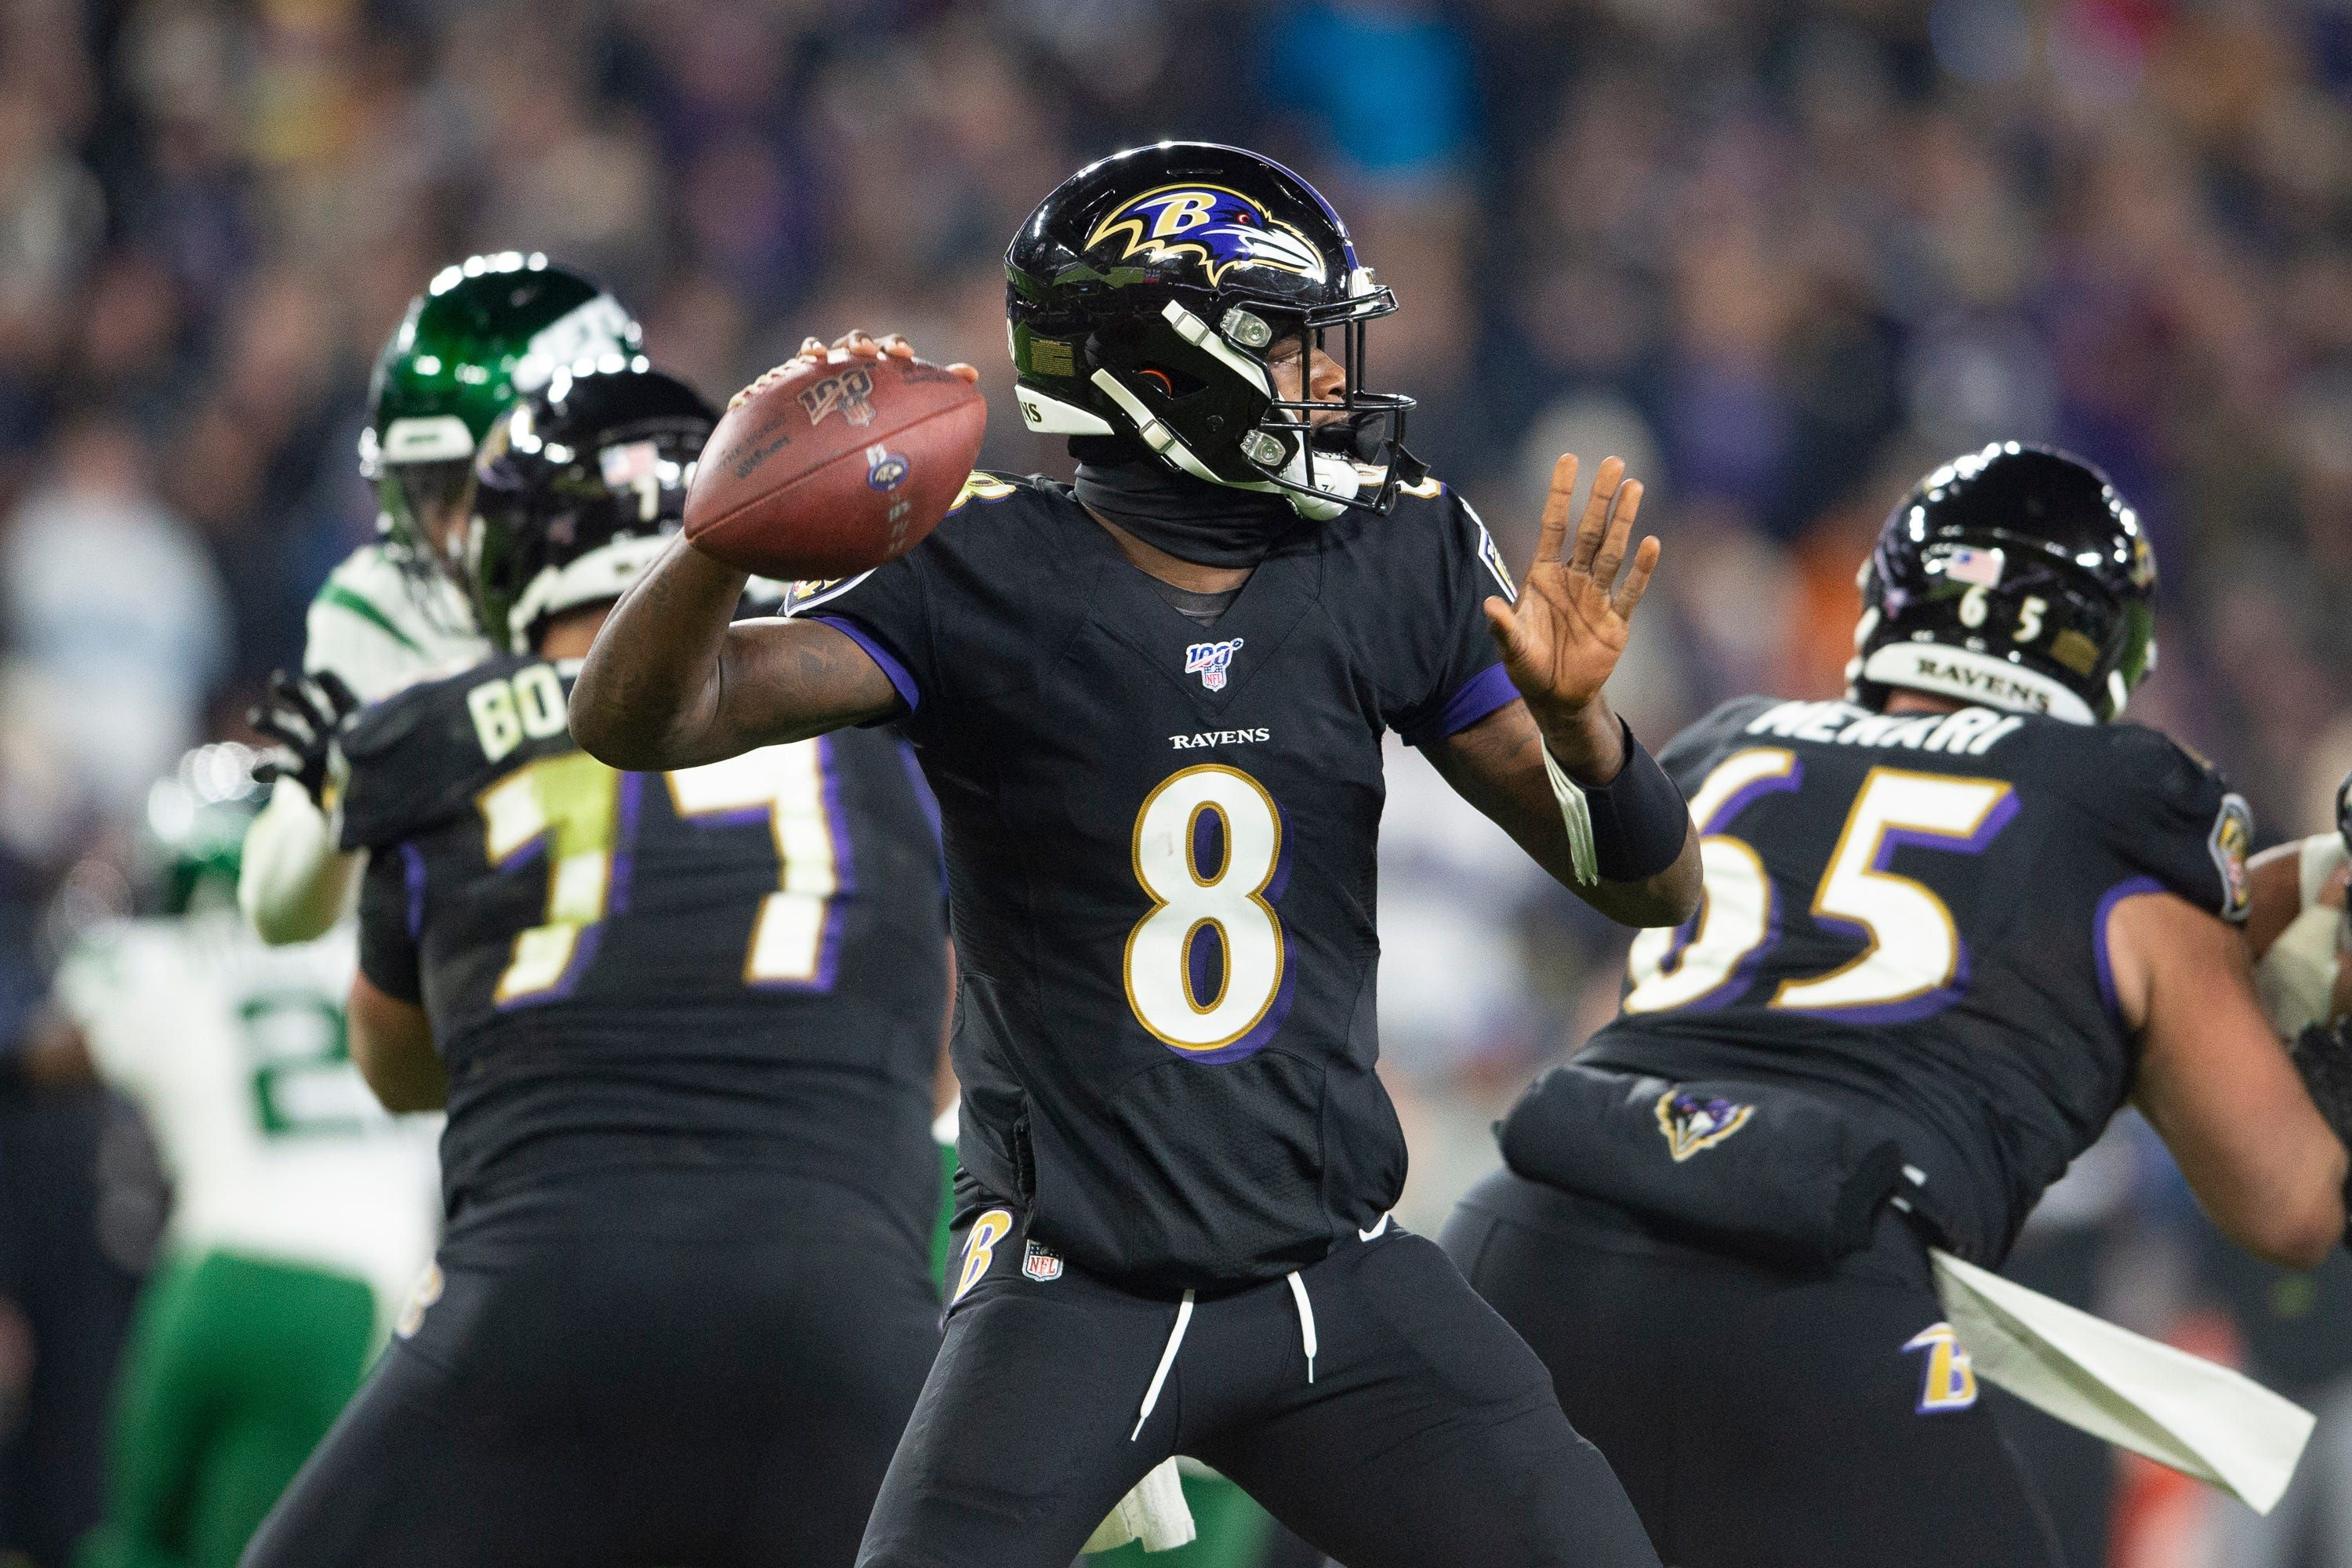 Lamar Jackson of Baltimore Ravens named No. 1 in 'Top 100